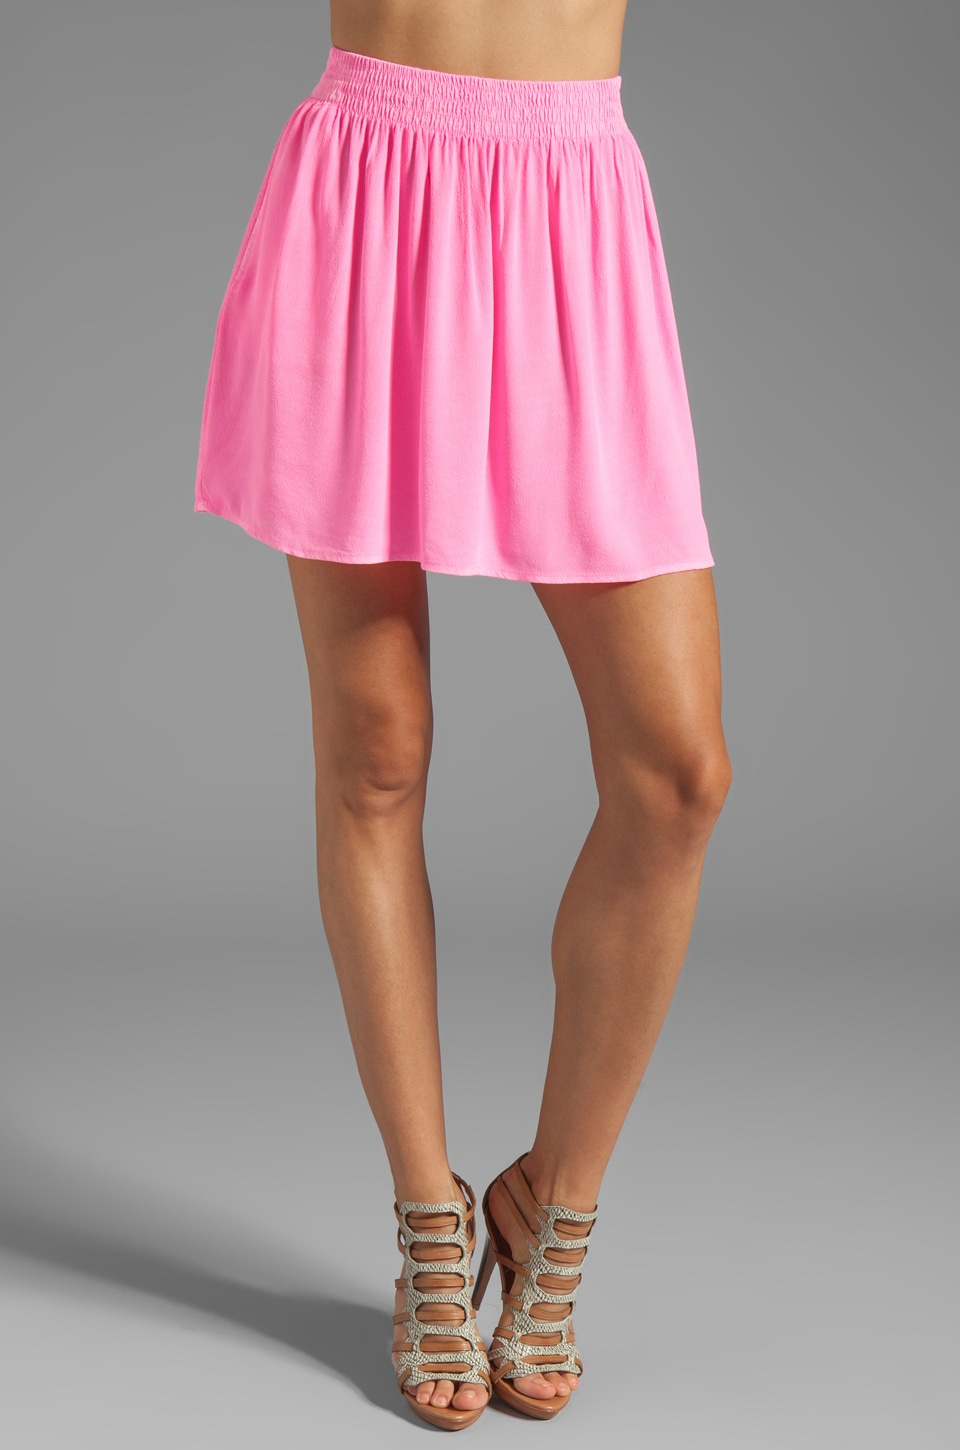 MONROW Crepe Short Skirt in Neon Pink